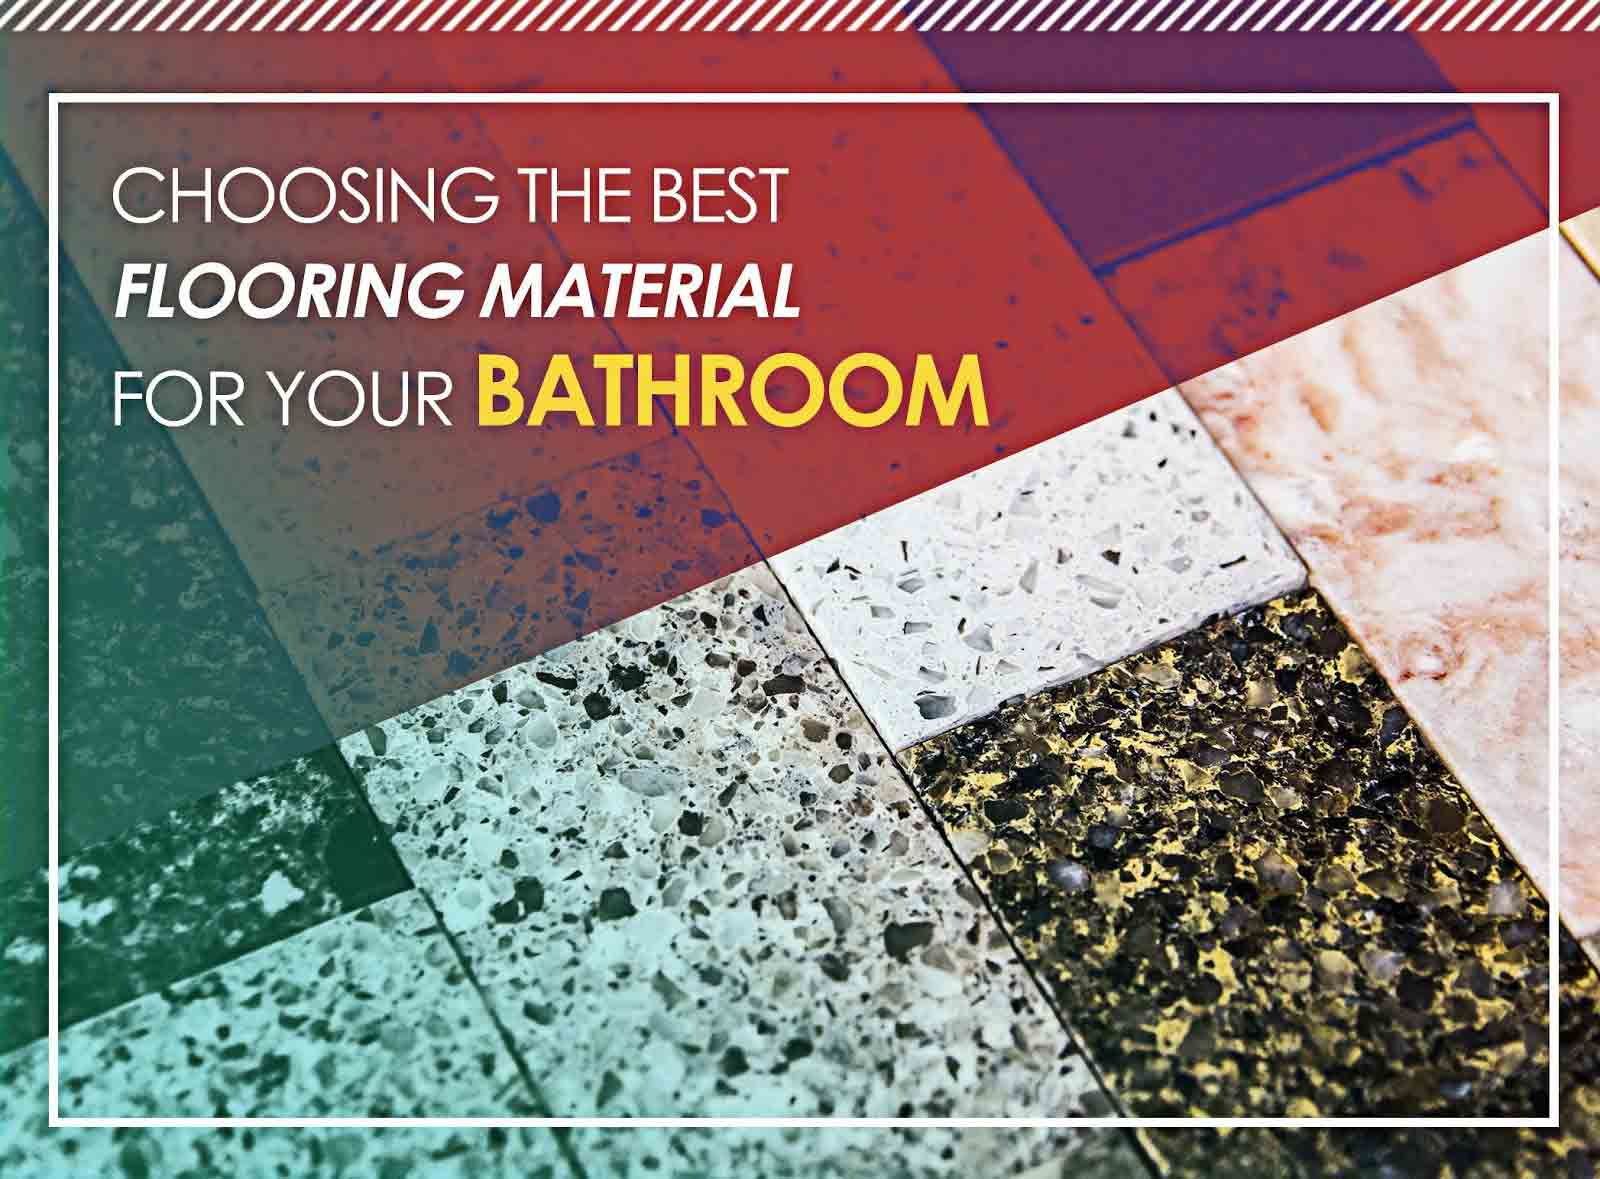 Choosing the Best Flooring Material for Your Bathroom